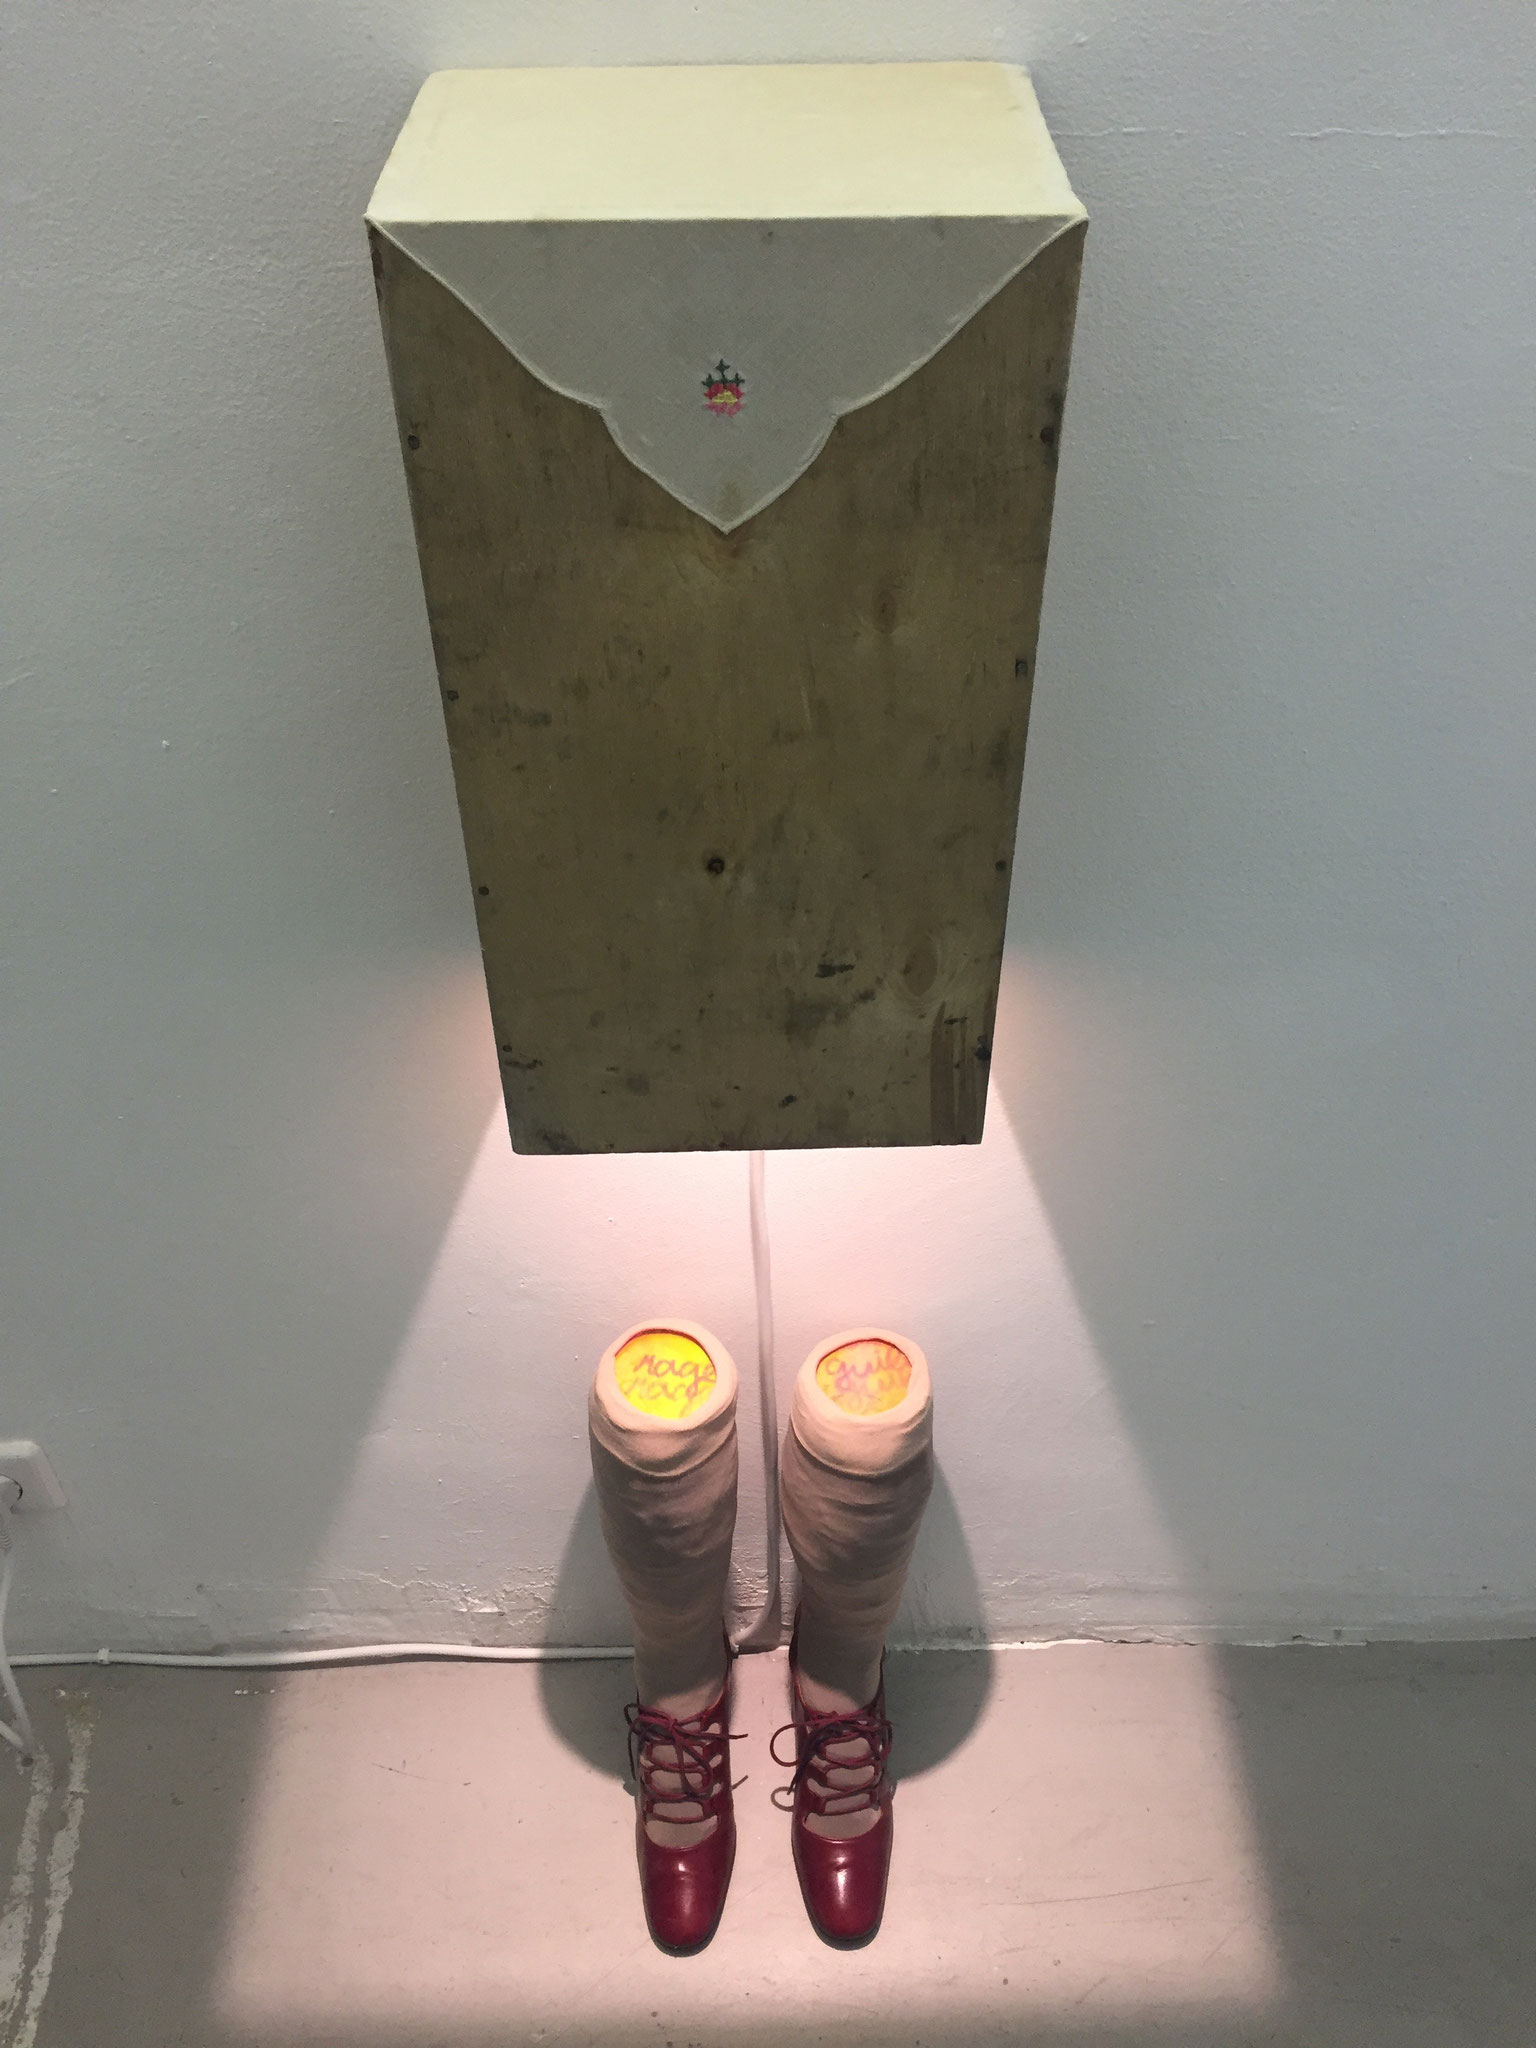 Rage and Guilt (2020, mixed media, holograms from Jürgen Eichler)